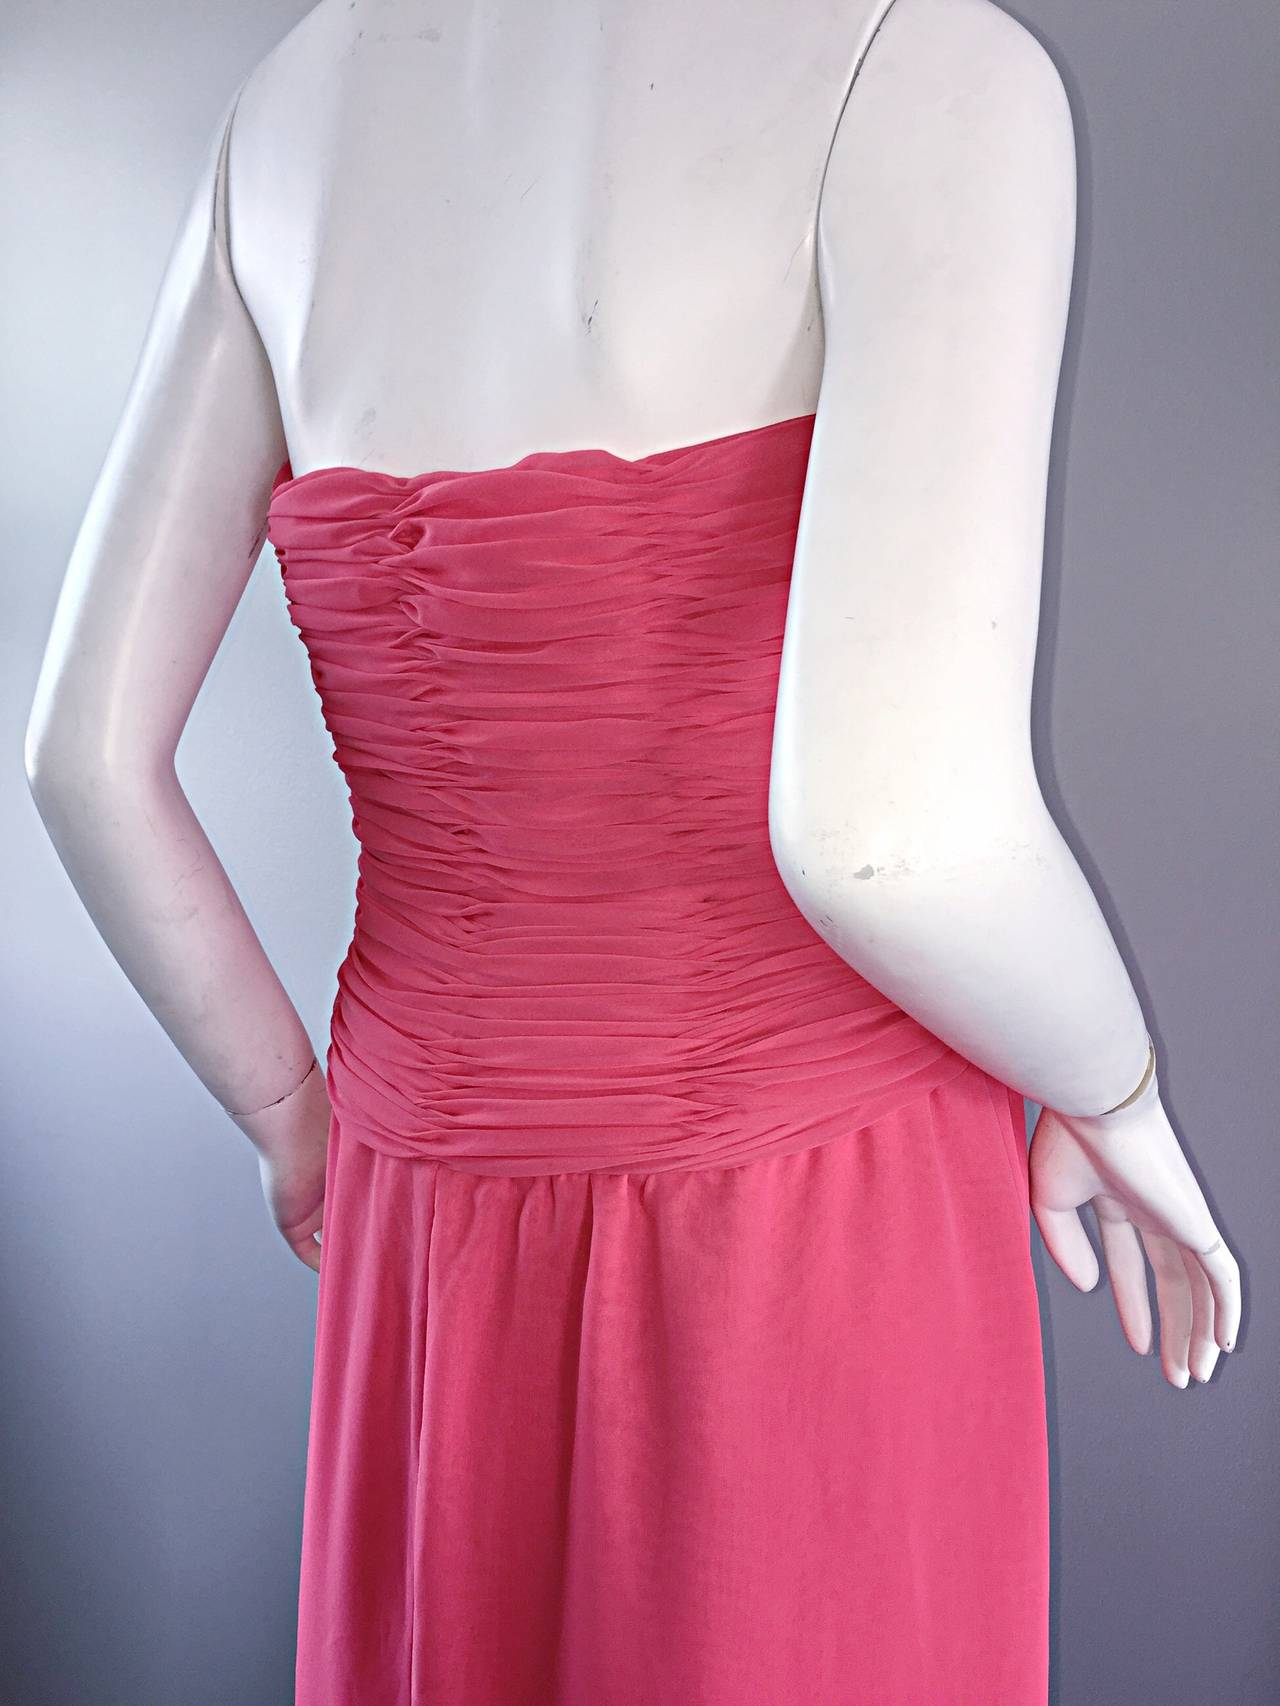 Women's Victor Costa Coral Pink Strapless Flowy Knotted Vintage Cocktail Dress Size 8 10 For Sale